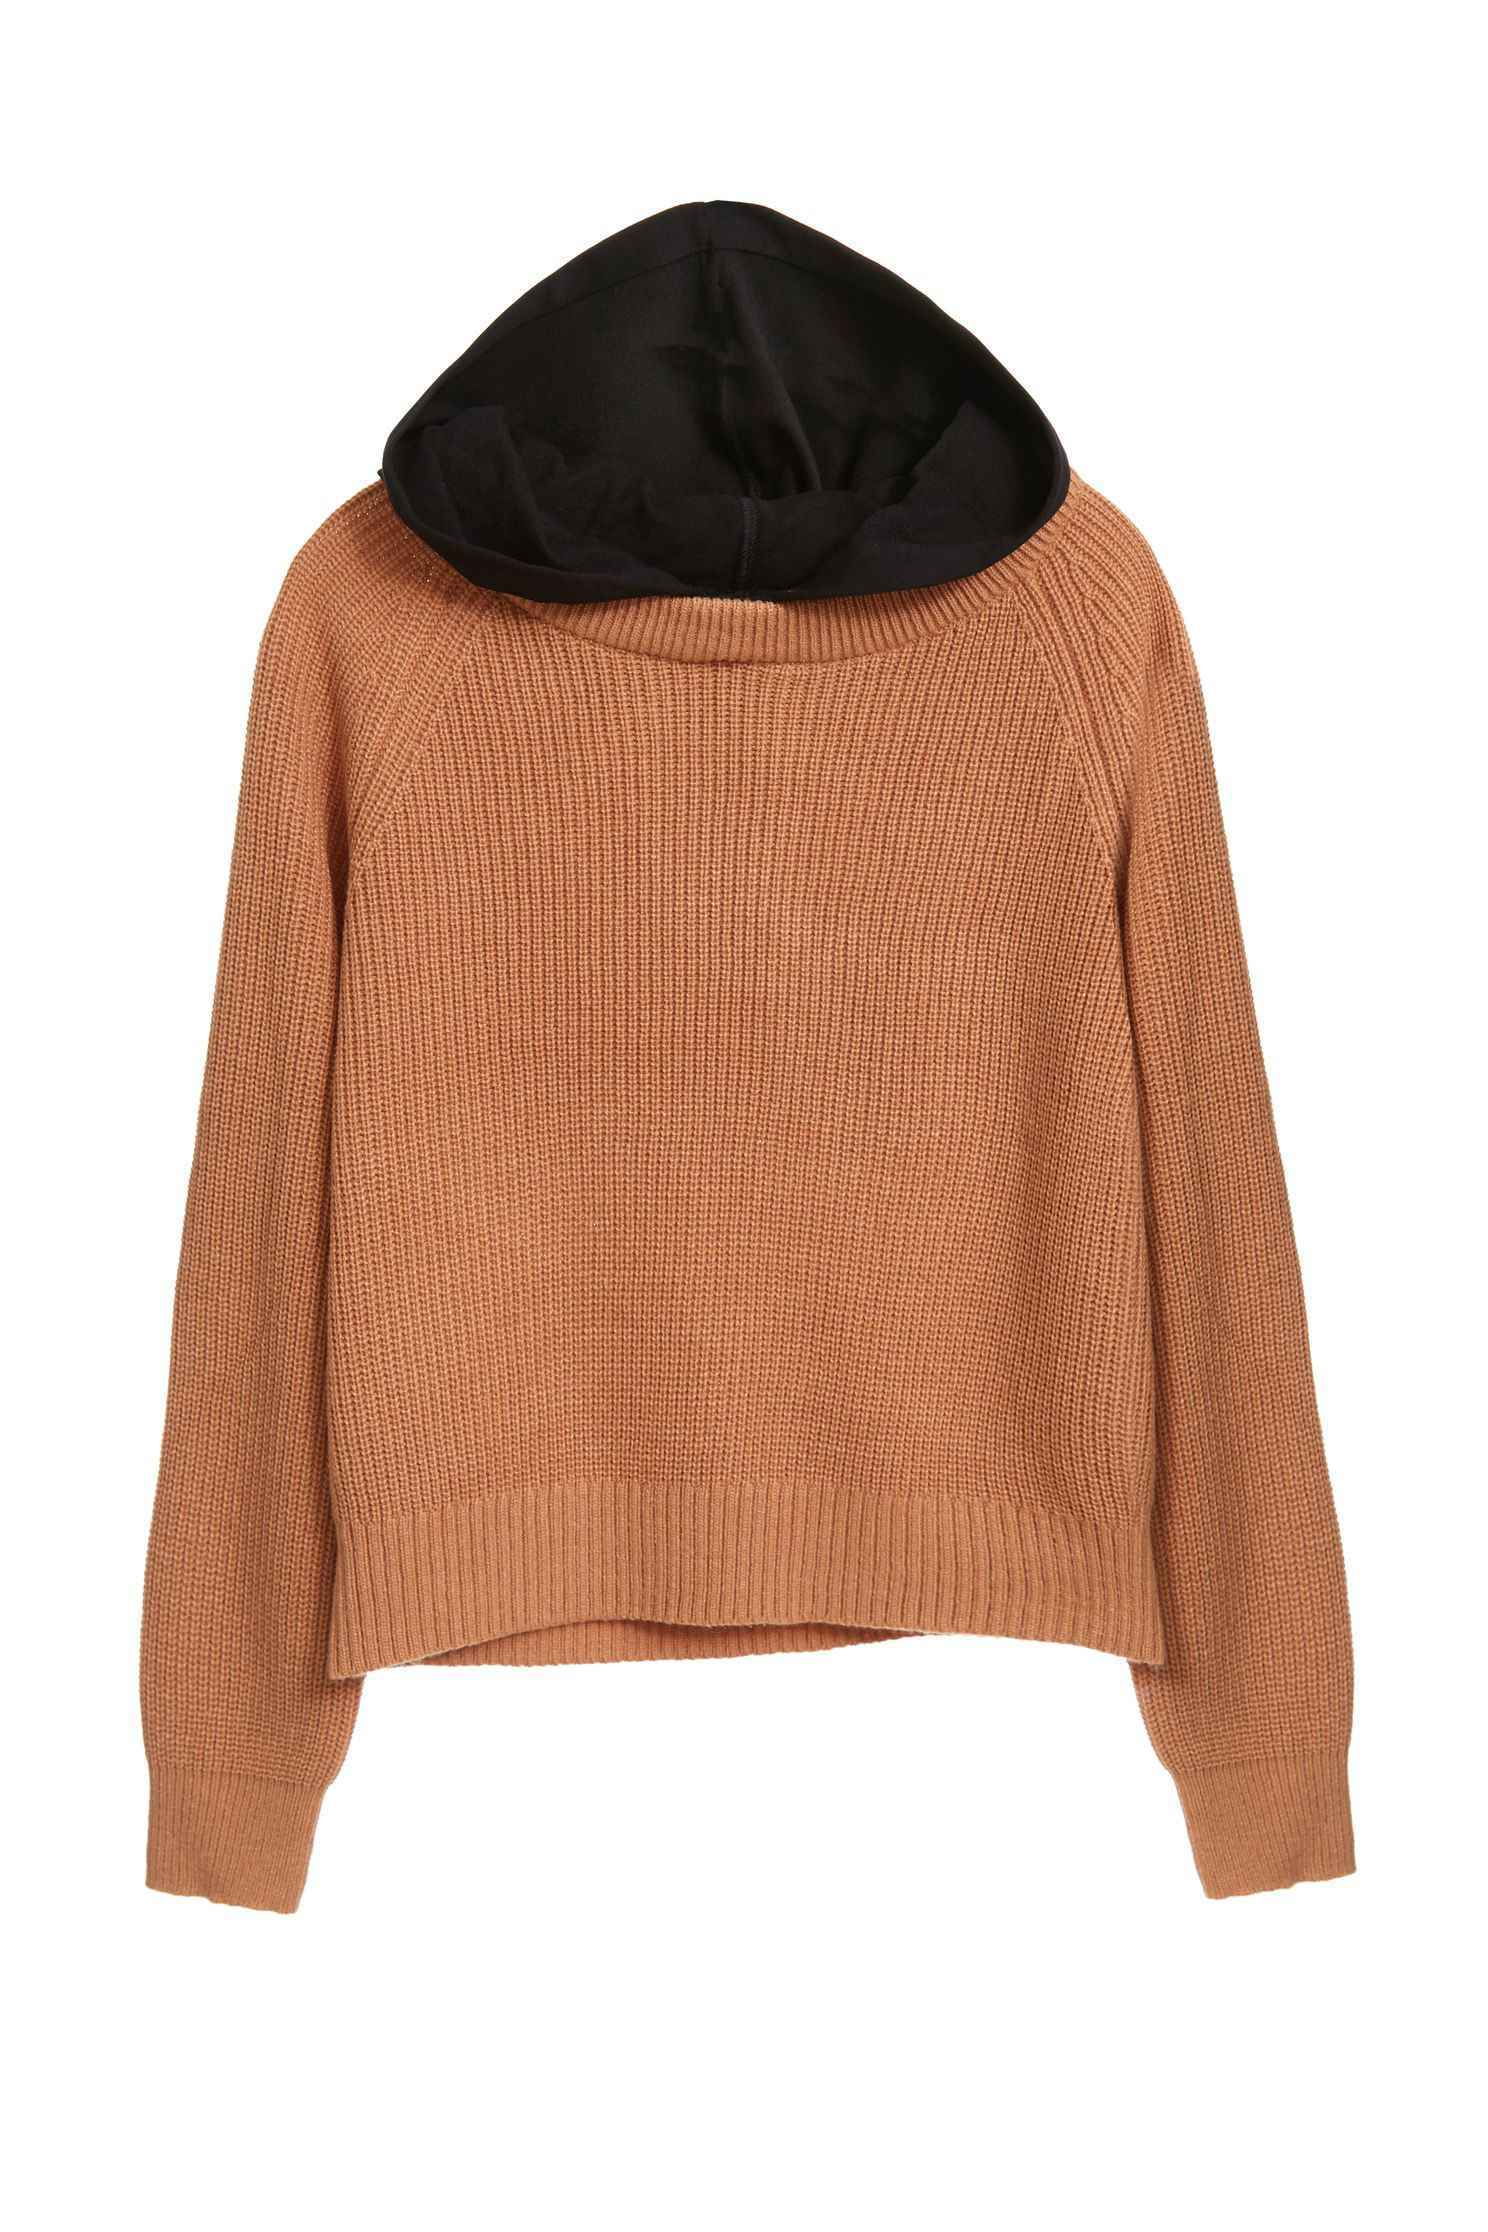 Hooded color knitwear,knitting,Knitted top,Knitted Top,長袖上衣